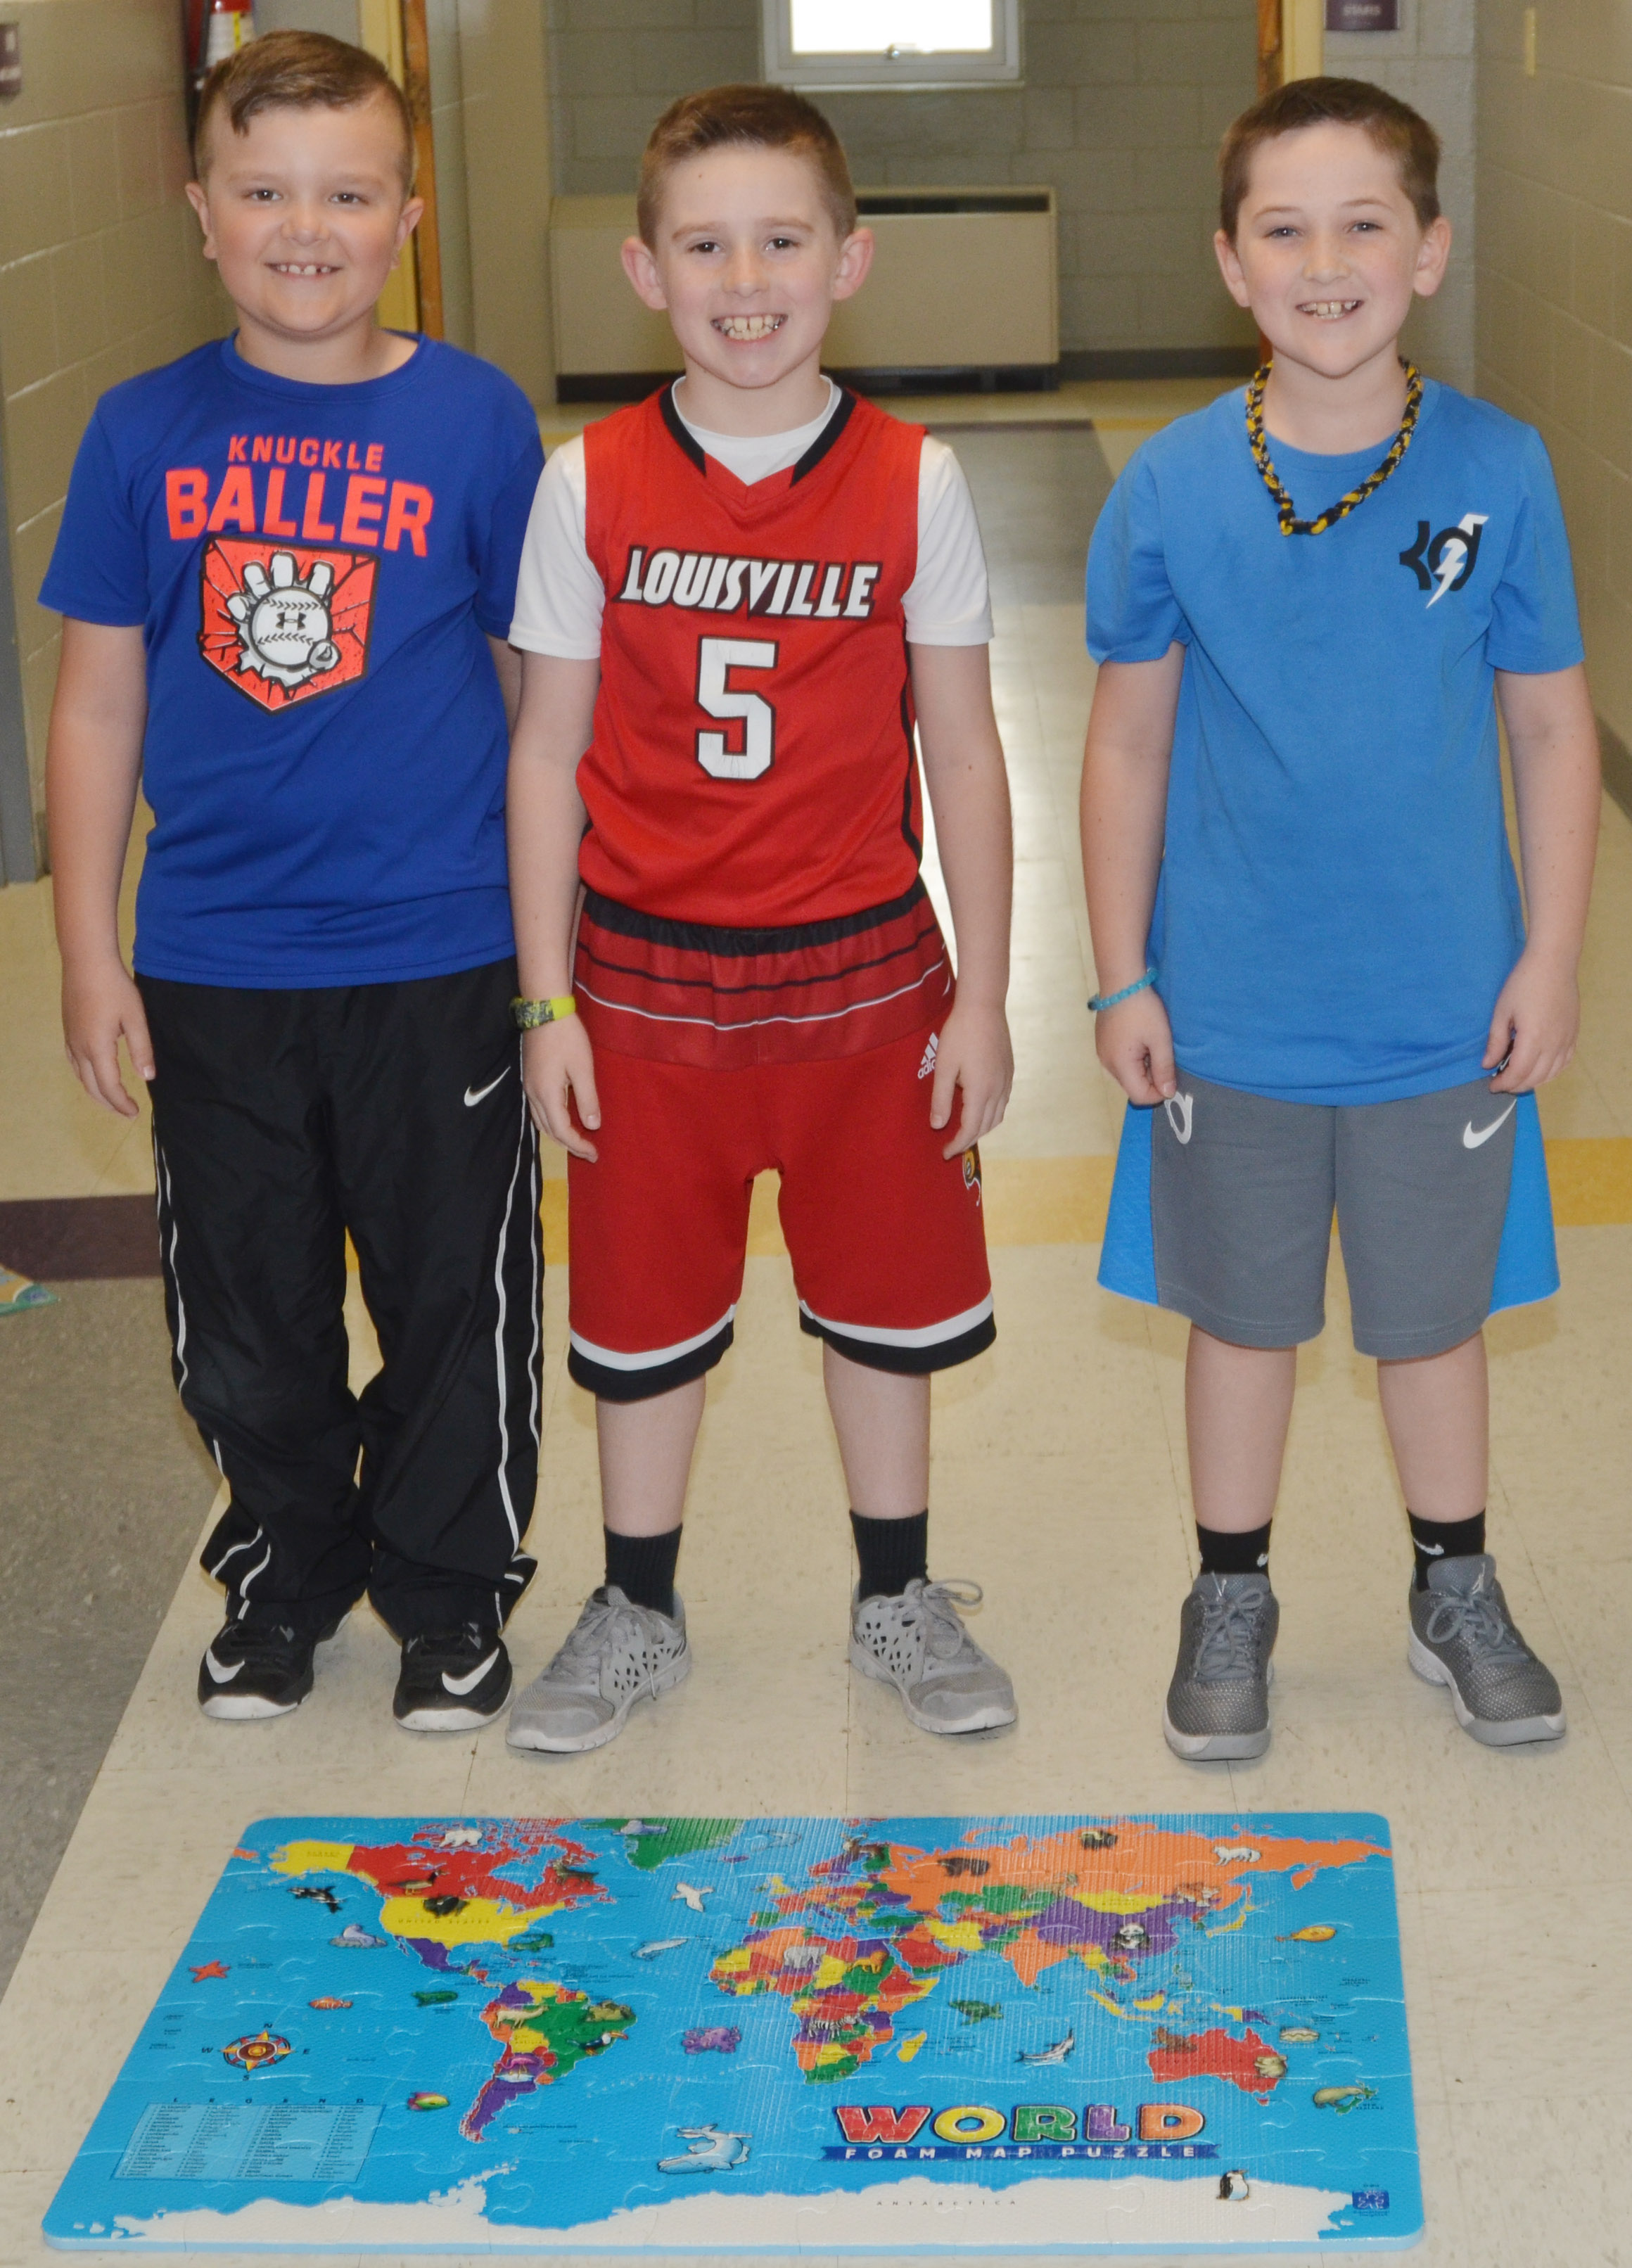 CES second-graders, from left, Cayton Lawhorn, Lanigan Price and Luke Adkins worked as a team to put together this world map puzzle.